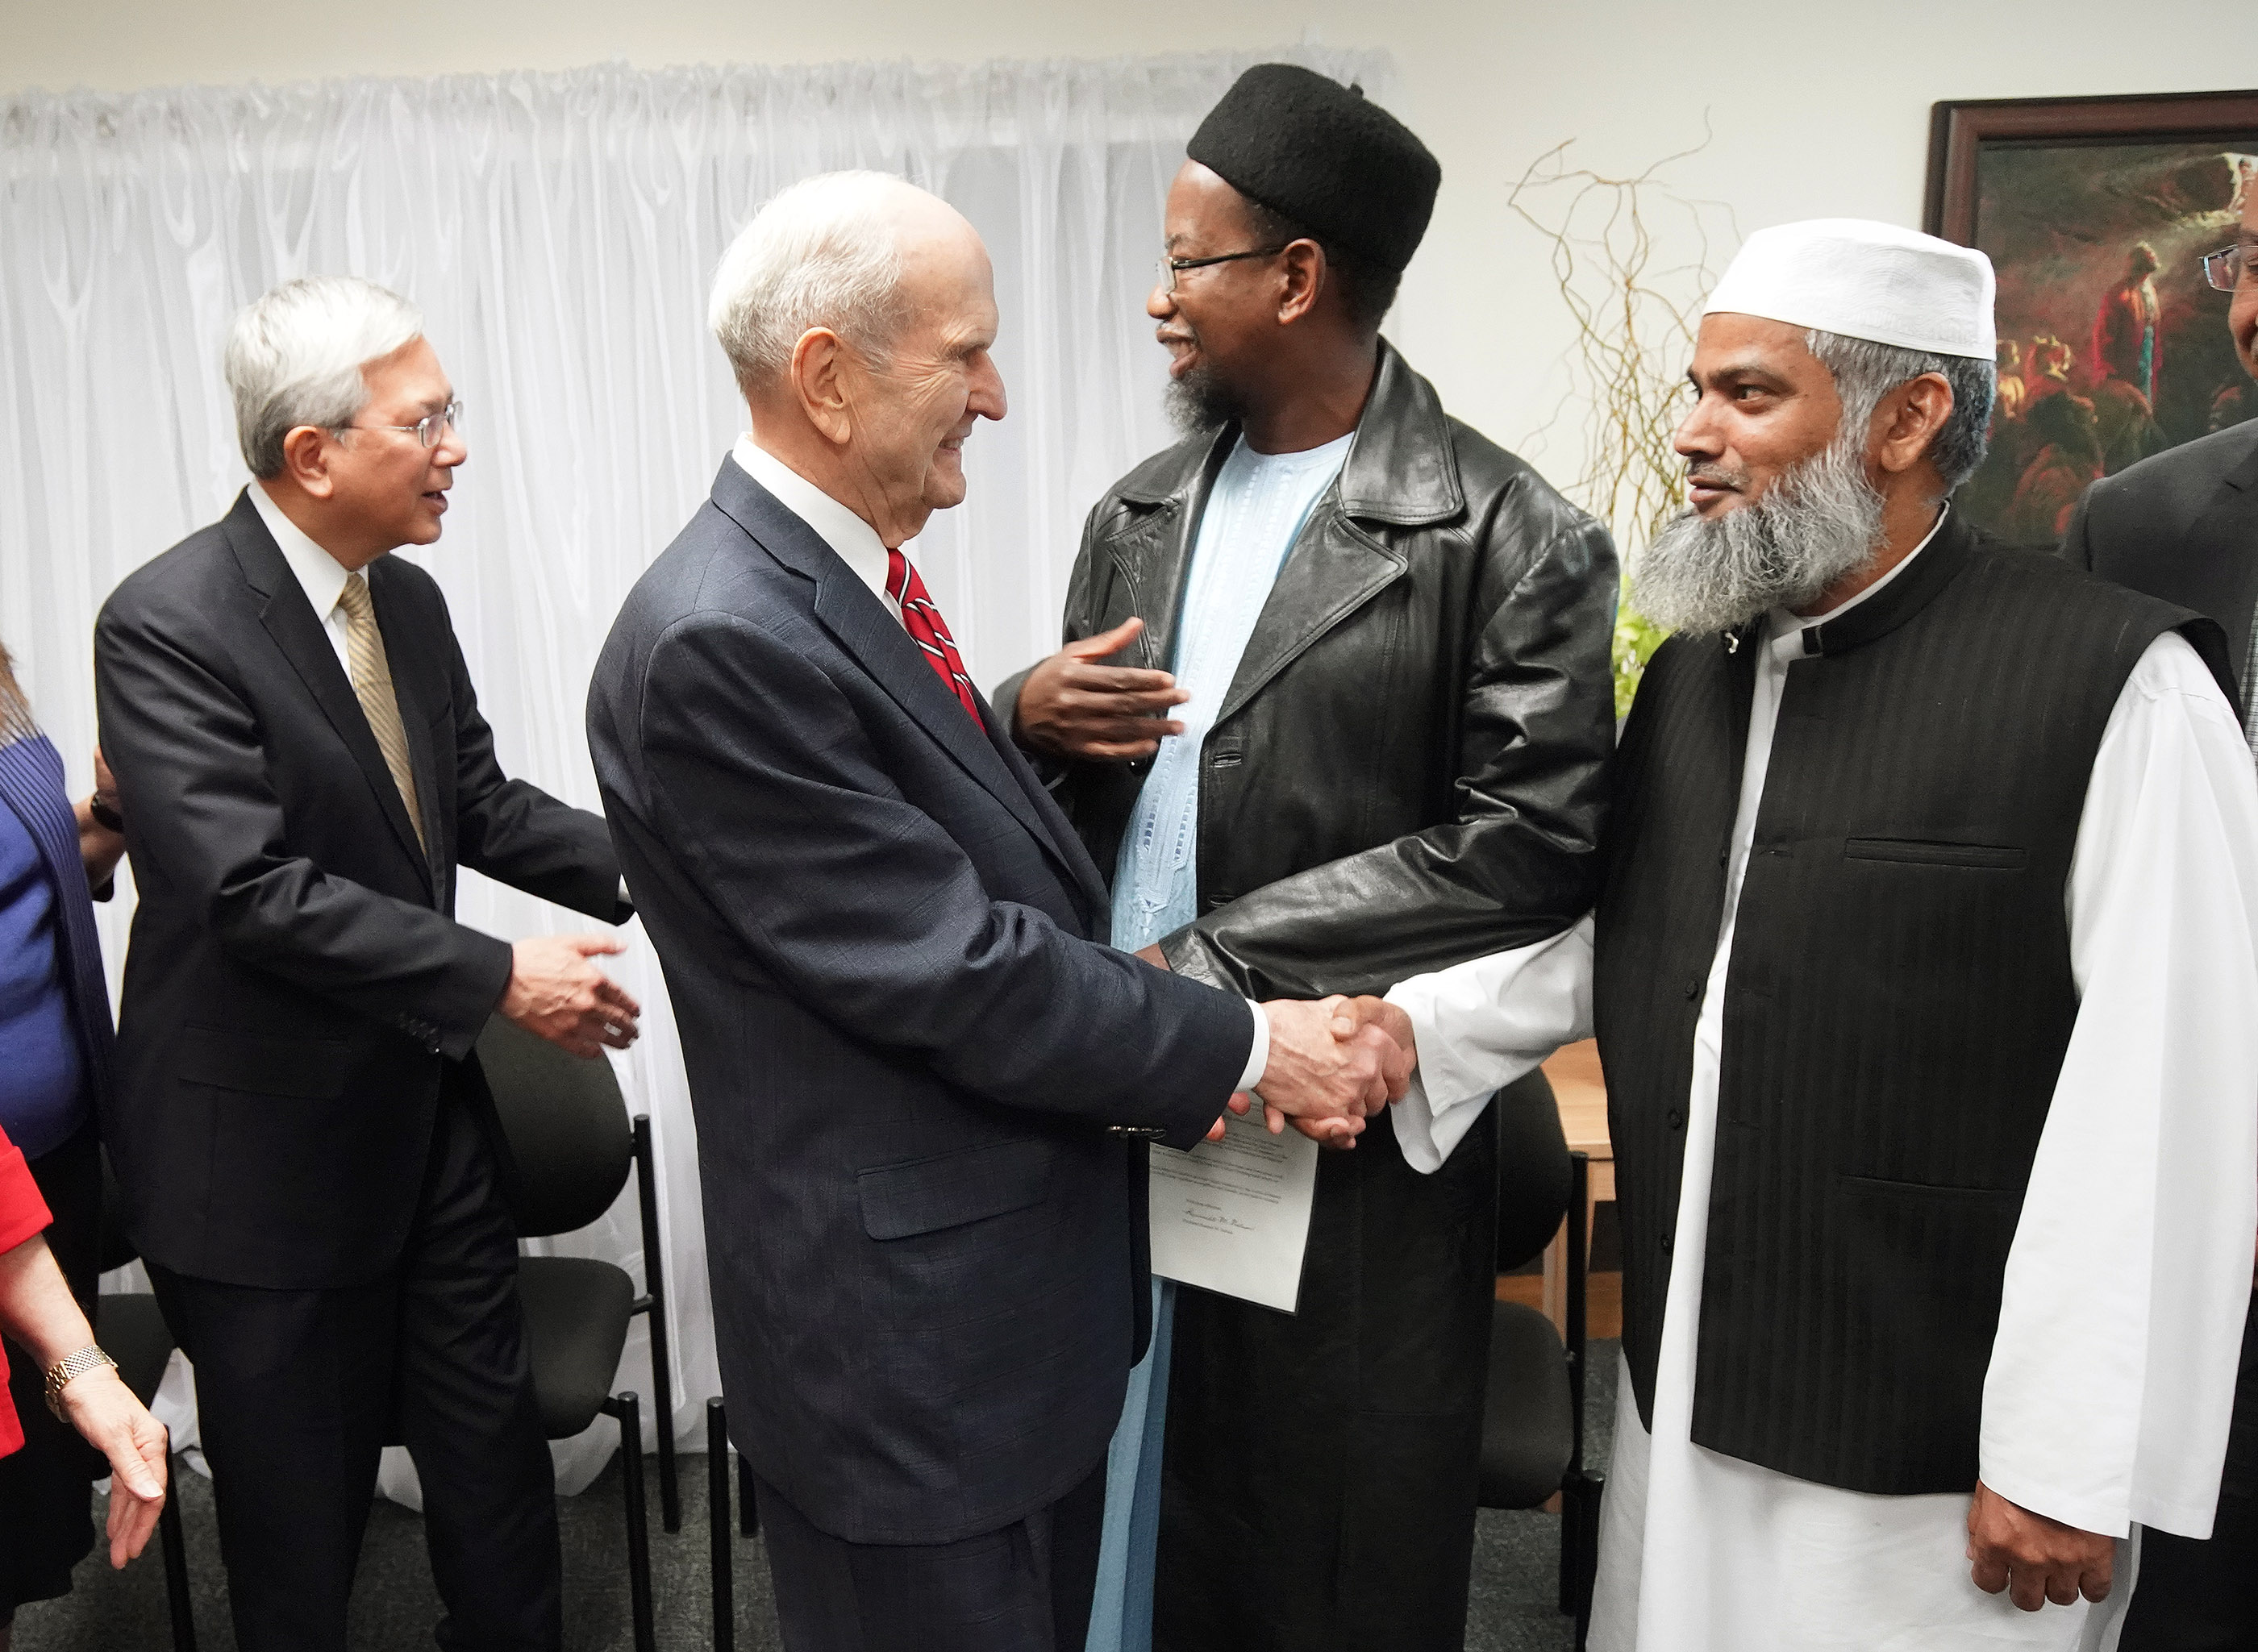 President Russell M. Nelson of The Church of Jesus Christ of Latter-day Saints greets Sheik Mohammad Amir and Elder Gerrit W. Gong, of The Church of Jesus Christ of Latter-day Saints' Quorum of the Twelve Apostles, shakes hands with Dr. Mustafa Farouk in Auckland, New Zealand on May 21, 2019.